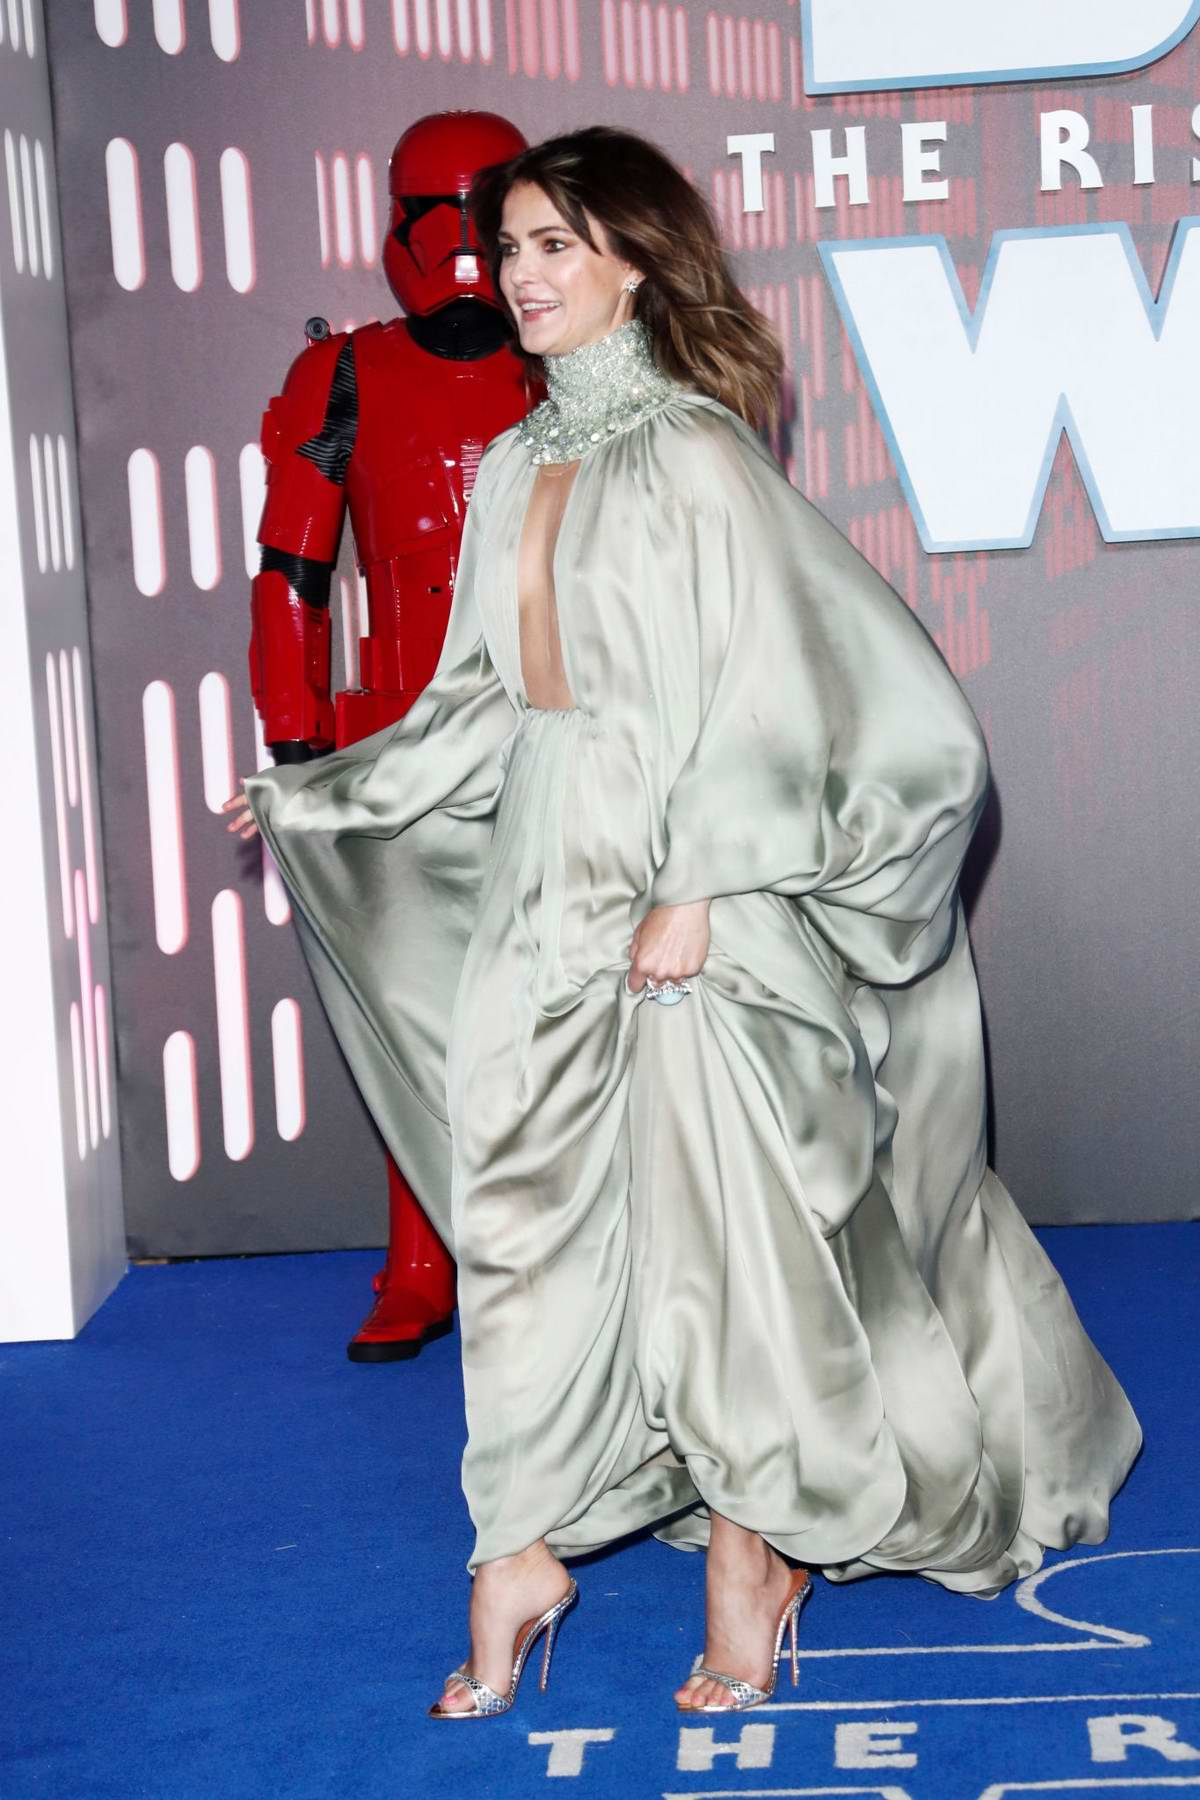 Keri Russell Attends The Premiere Of Star Wars The Rise Of Skywalker In London Uk 181219 6